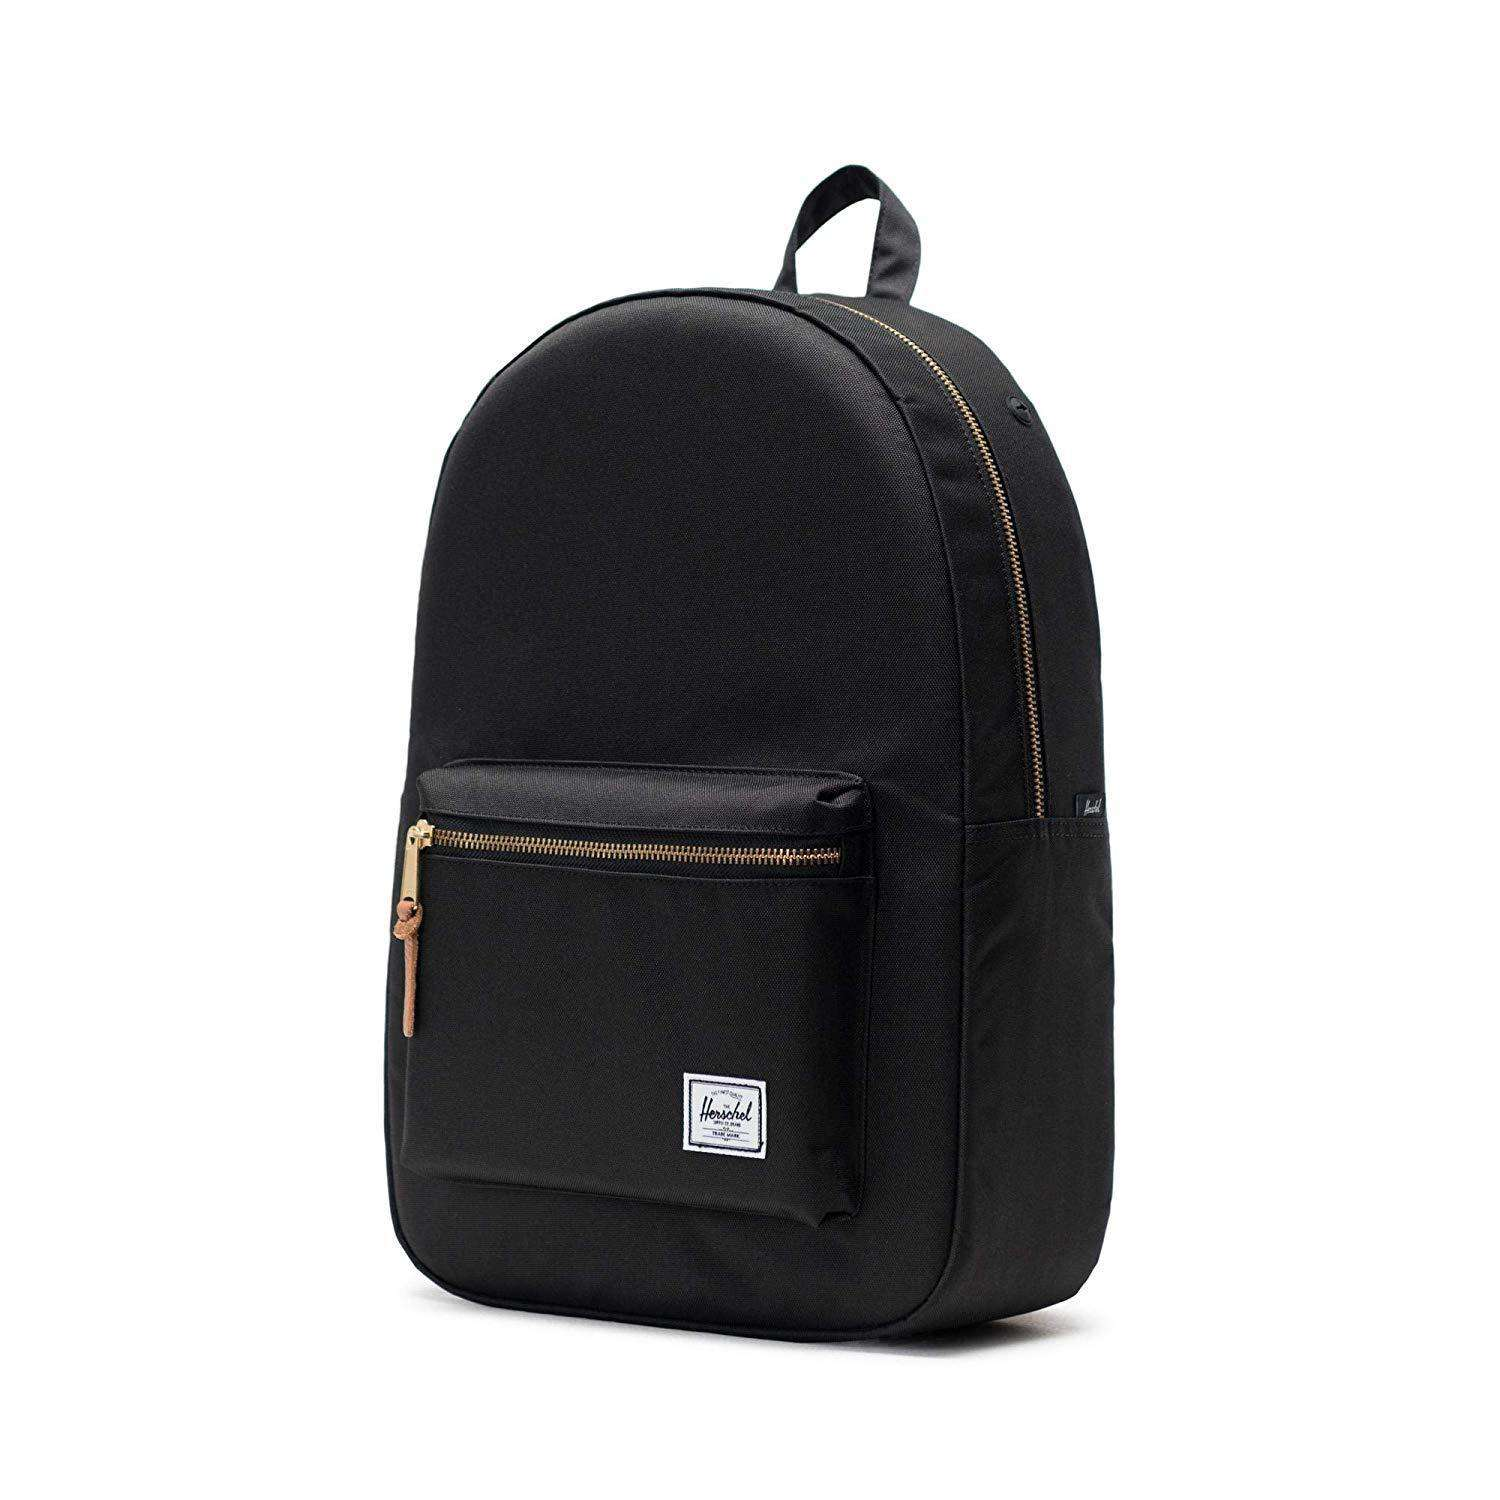 Herschel Settlement Backpack Heavy Duty Lightweight Bag - Black Gridlock Leather Umisfashion Store